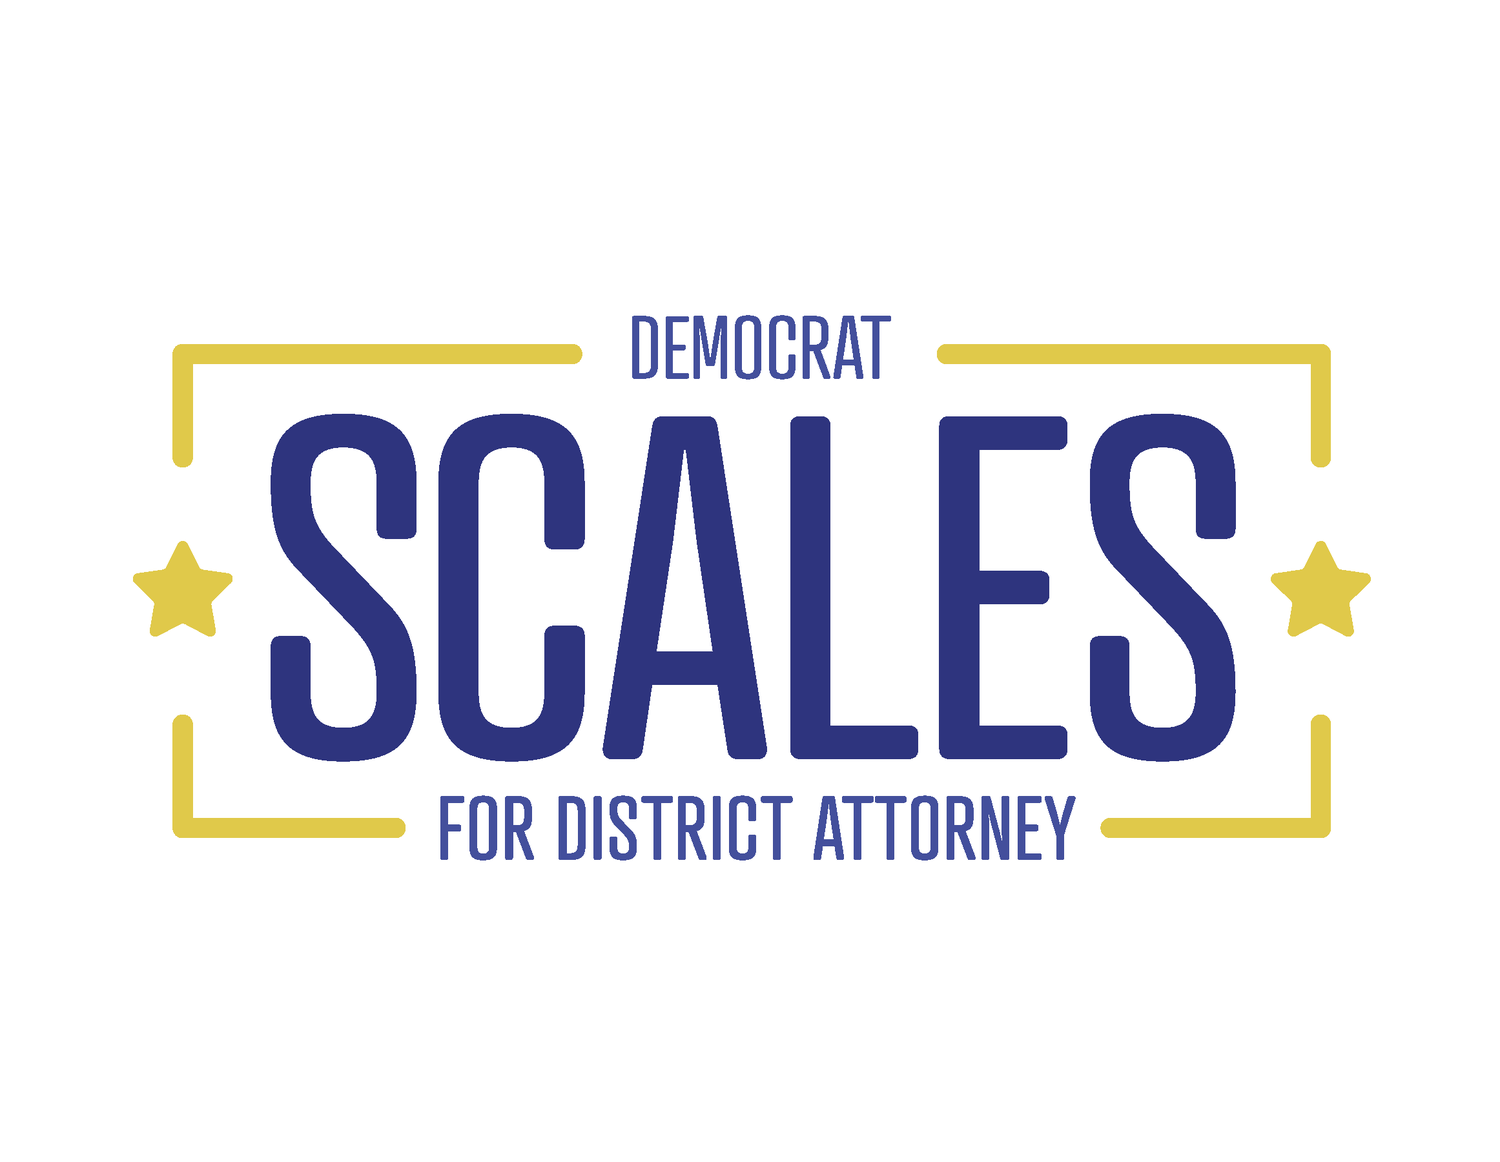 Ben Scales for Buncombe County District Attorney